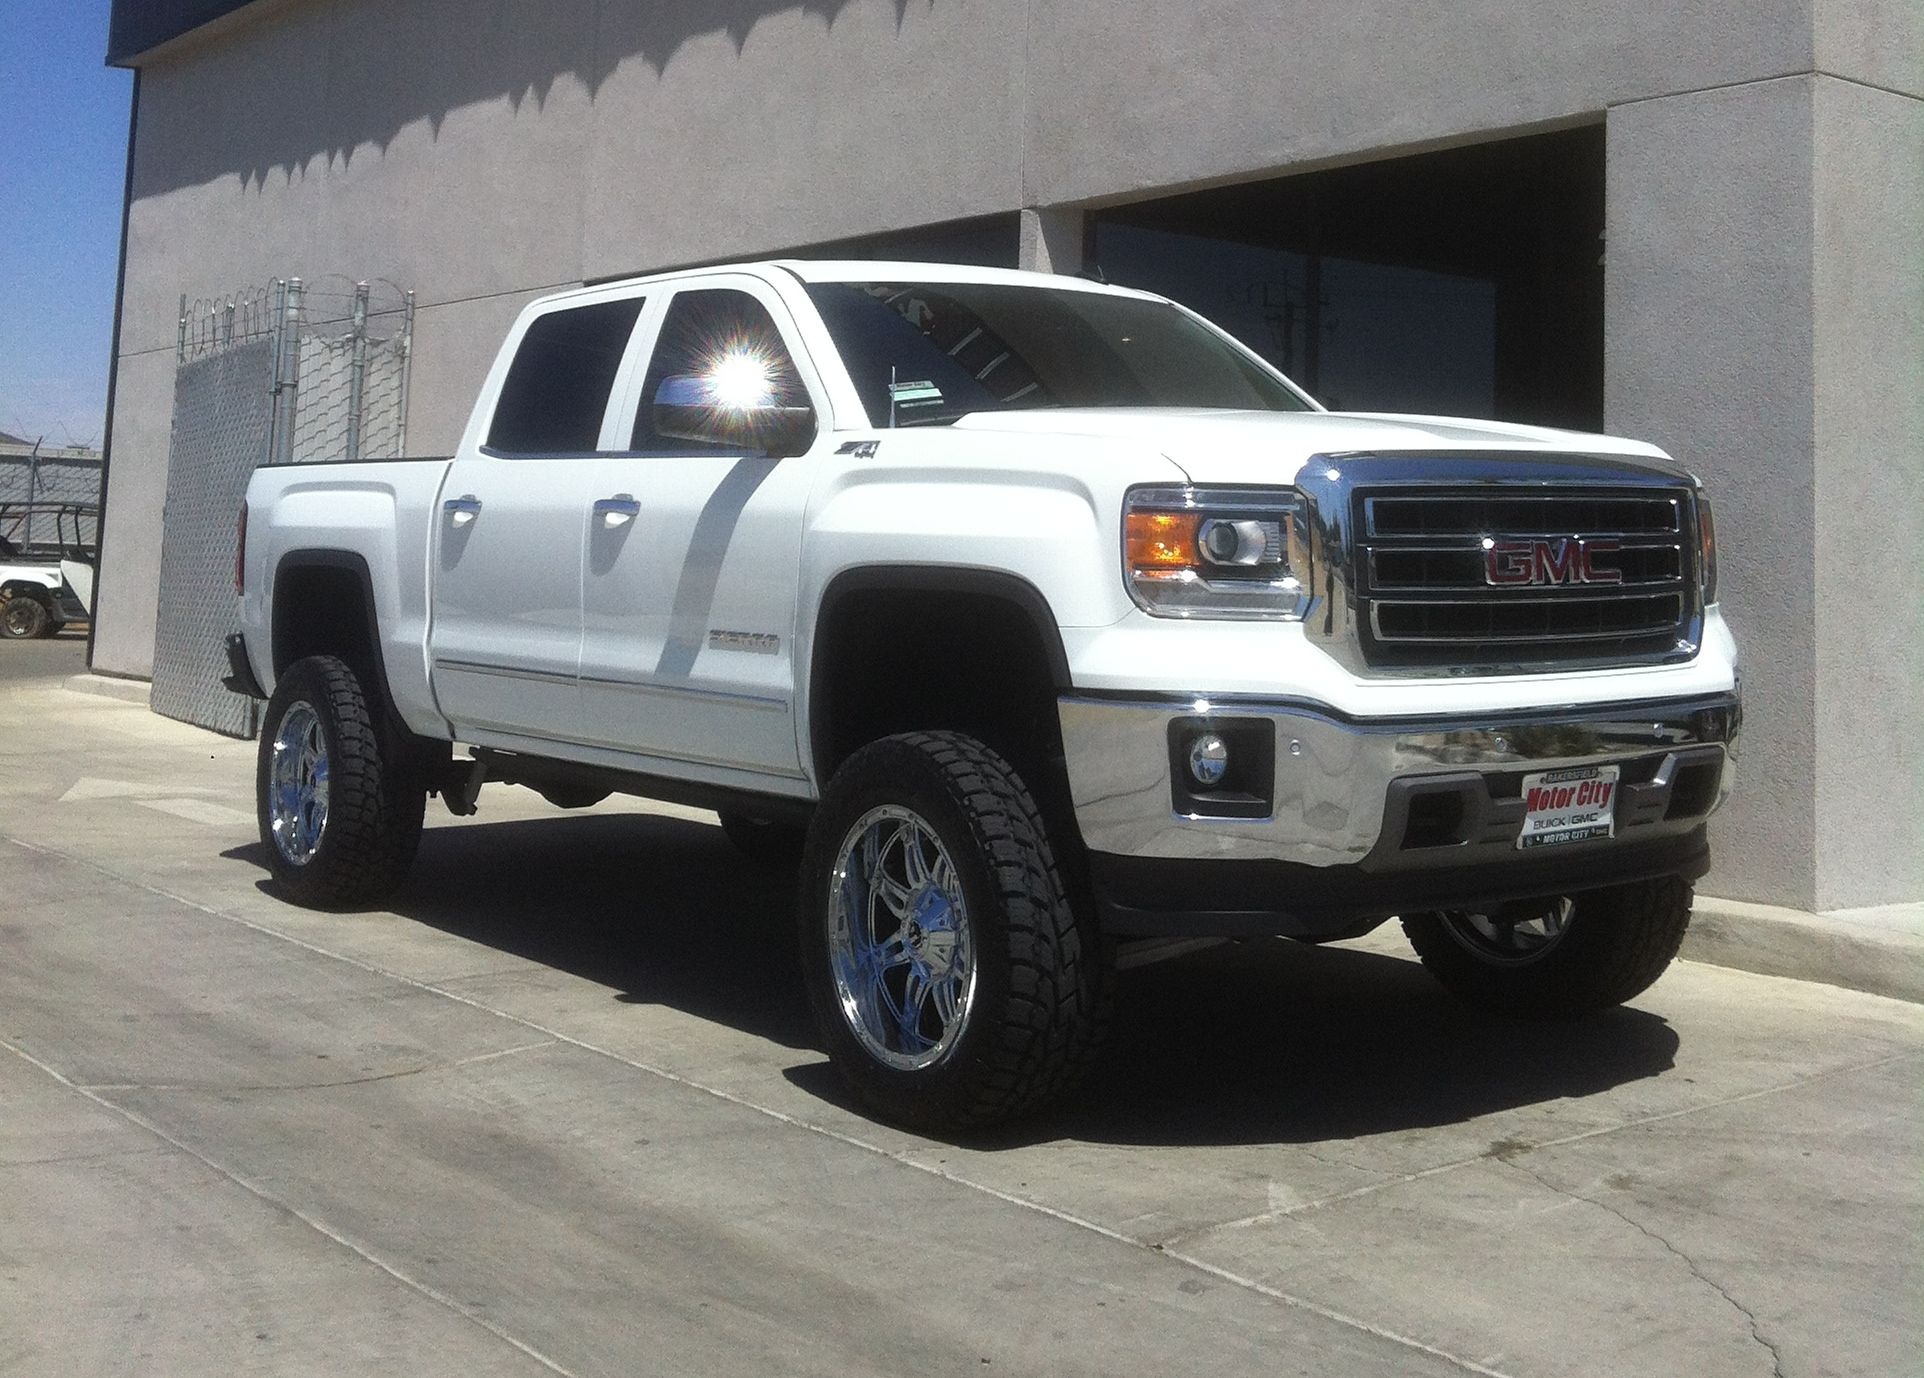 The chevrolet silverado ss is a midsize double cab pickup truck available in midnight club